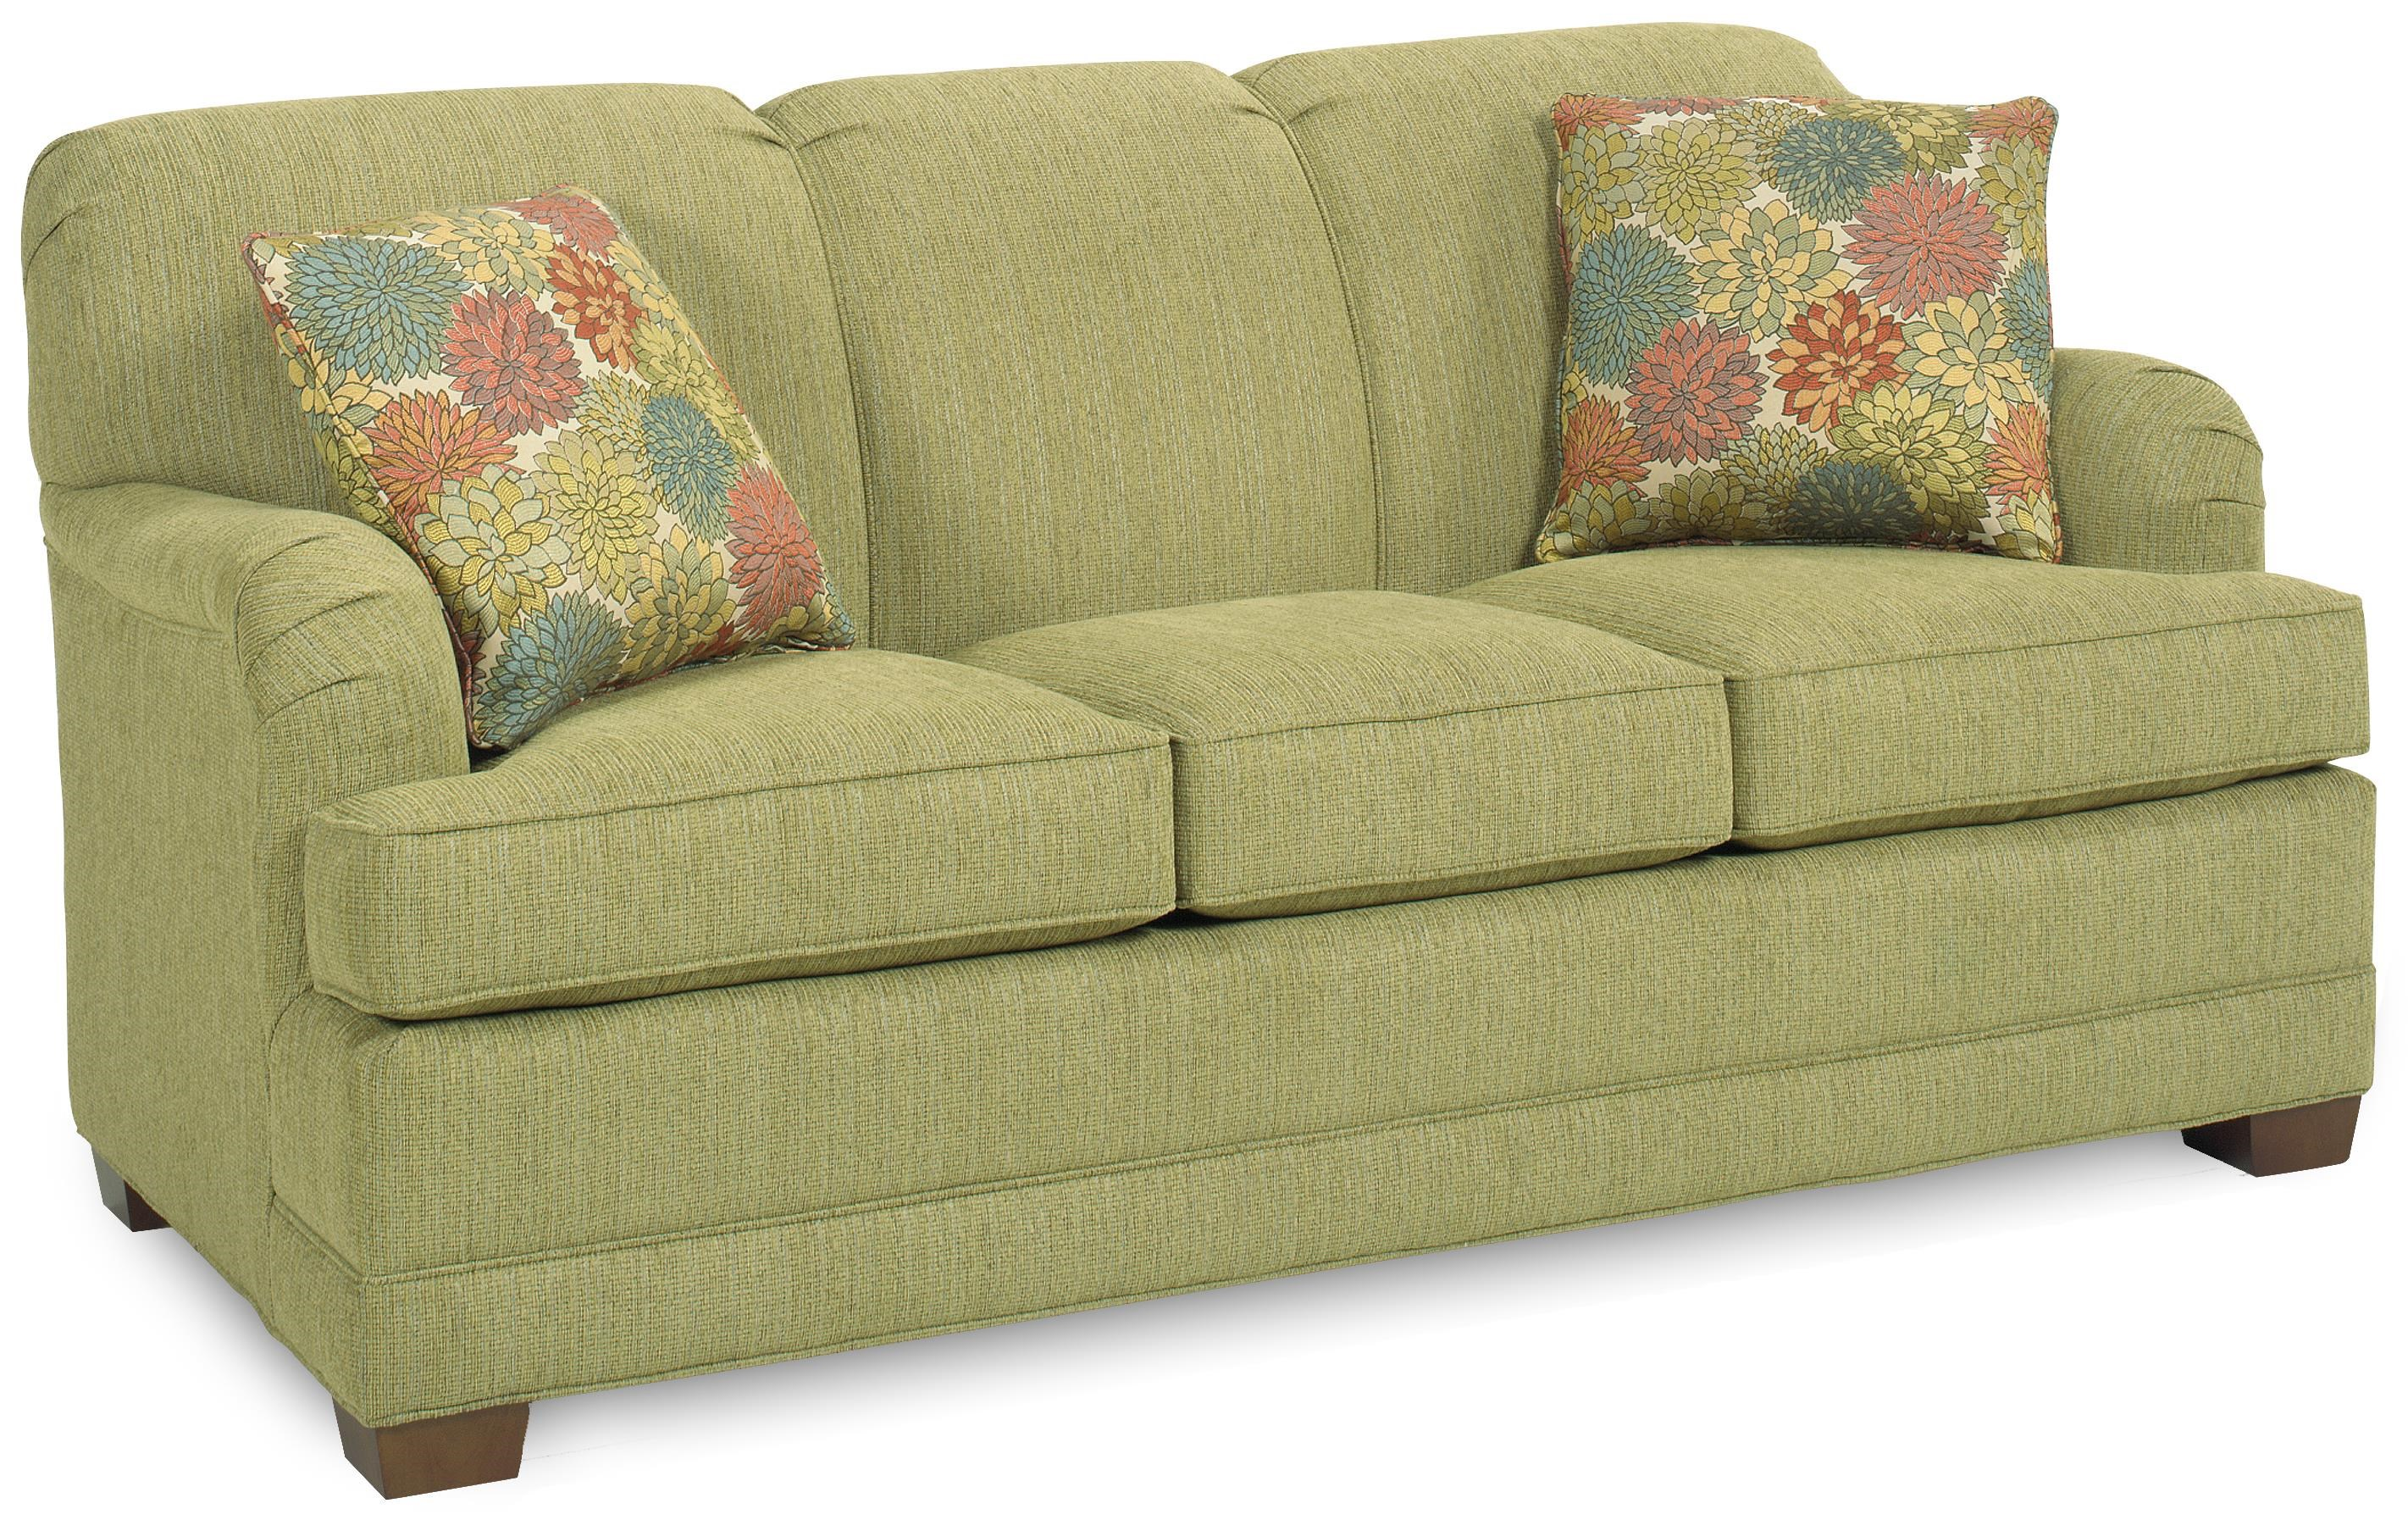 Temple Furniture Tailor MadeTraditional Stationary Sofa